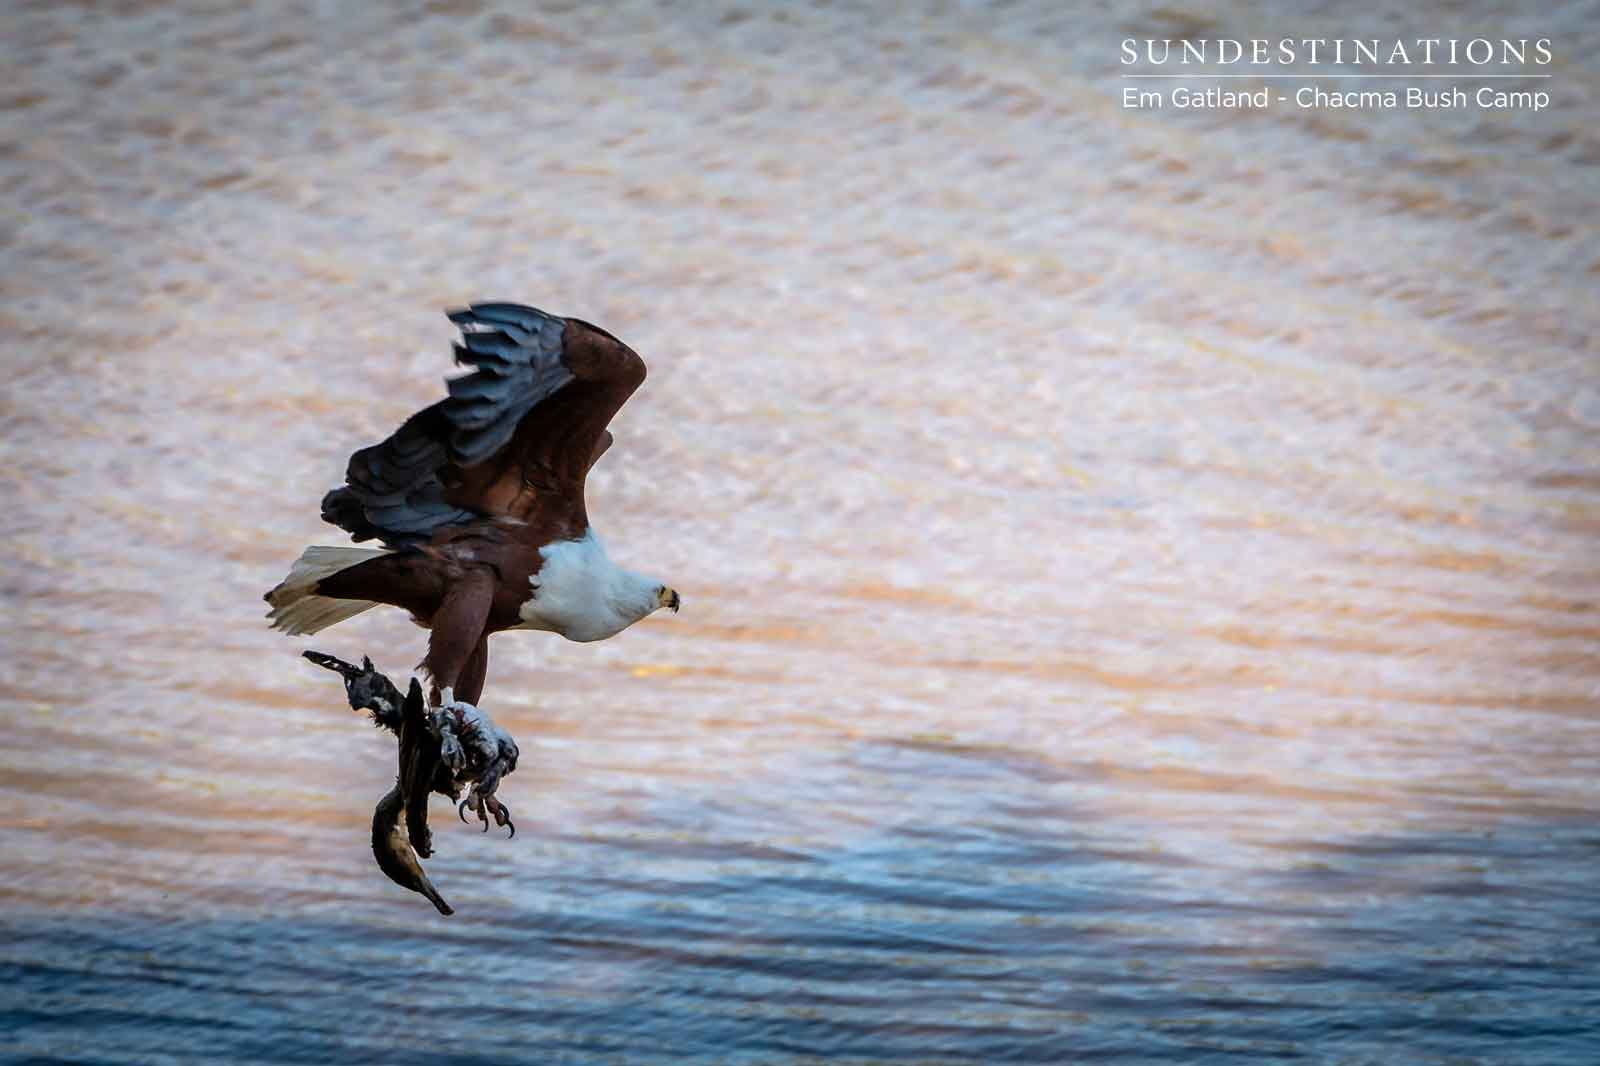 Chacma River with Fish Eagle